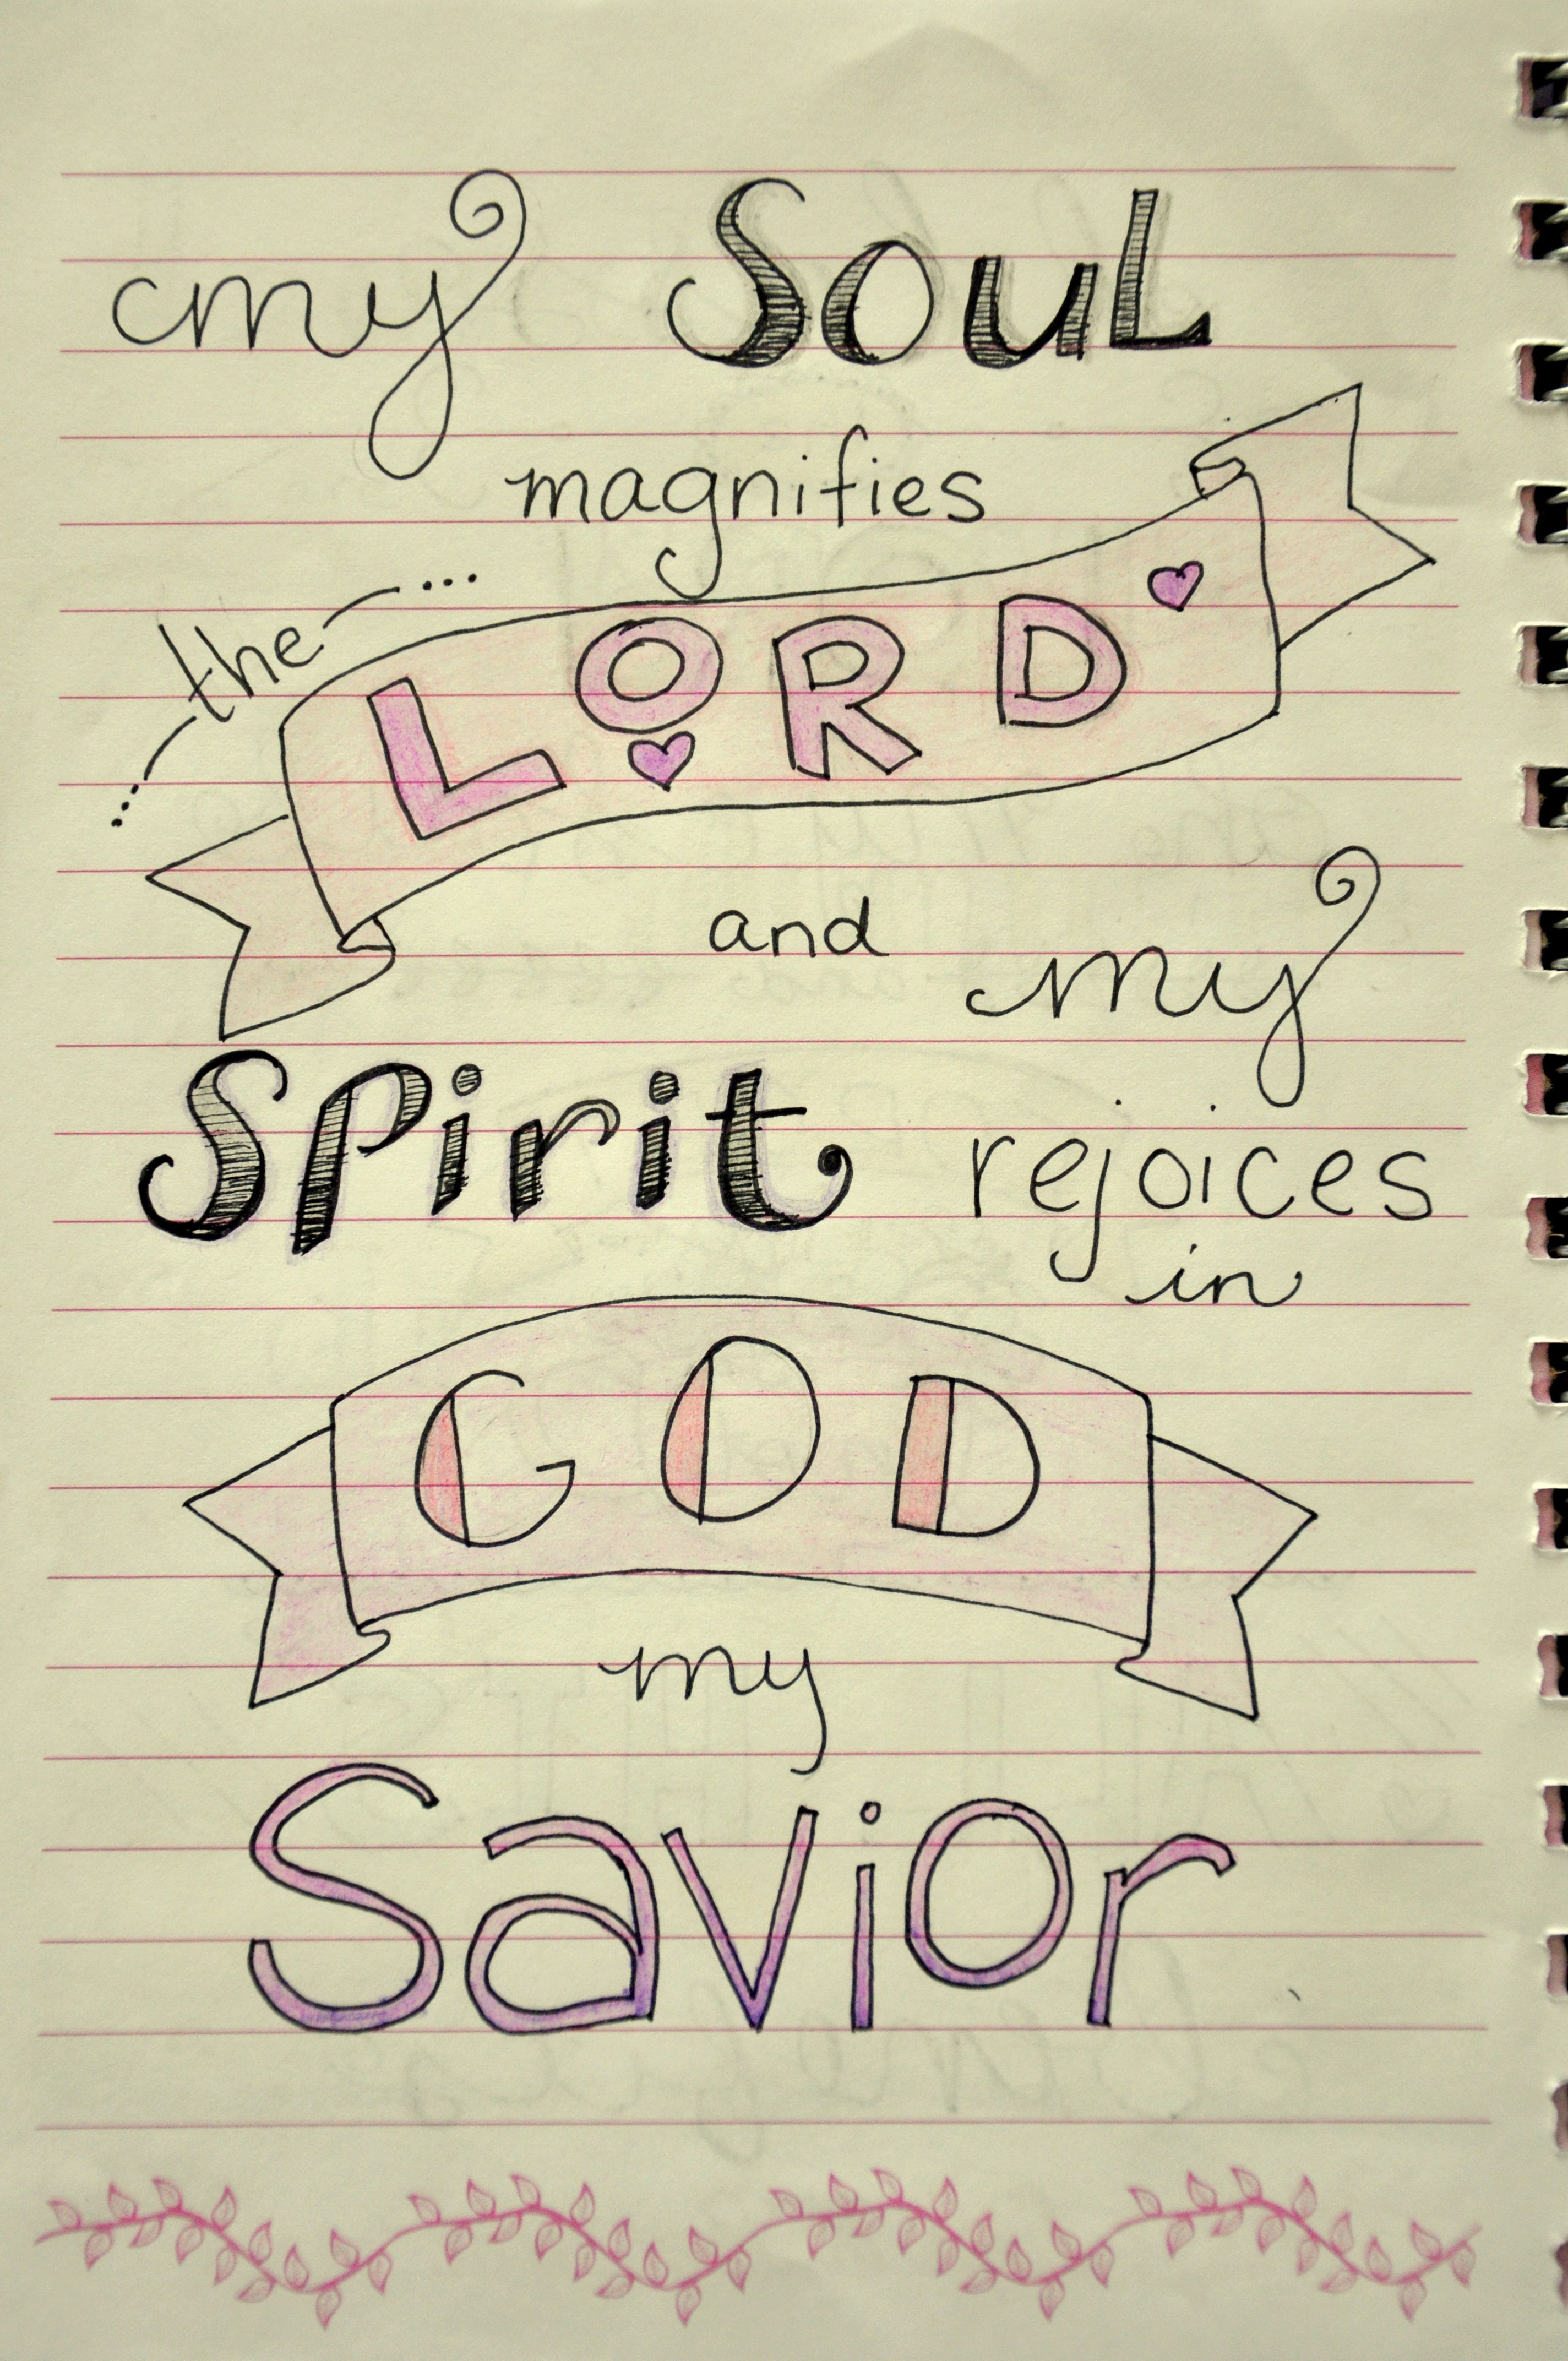 my soul magnifies the lord images bible journaling